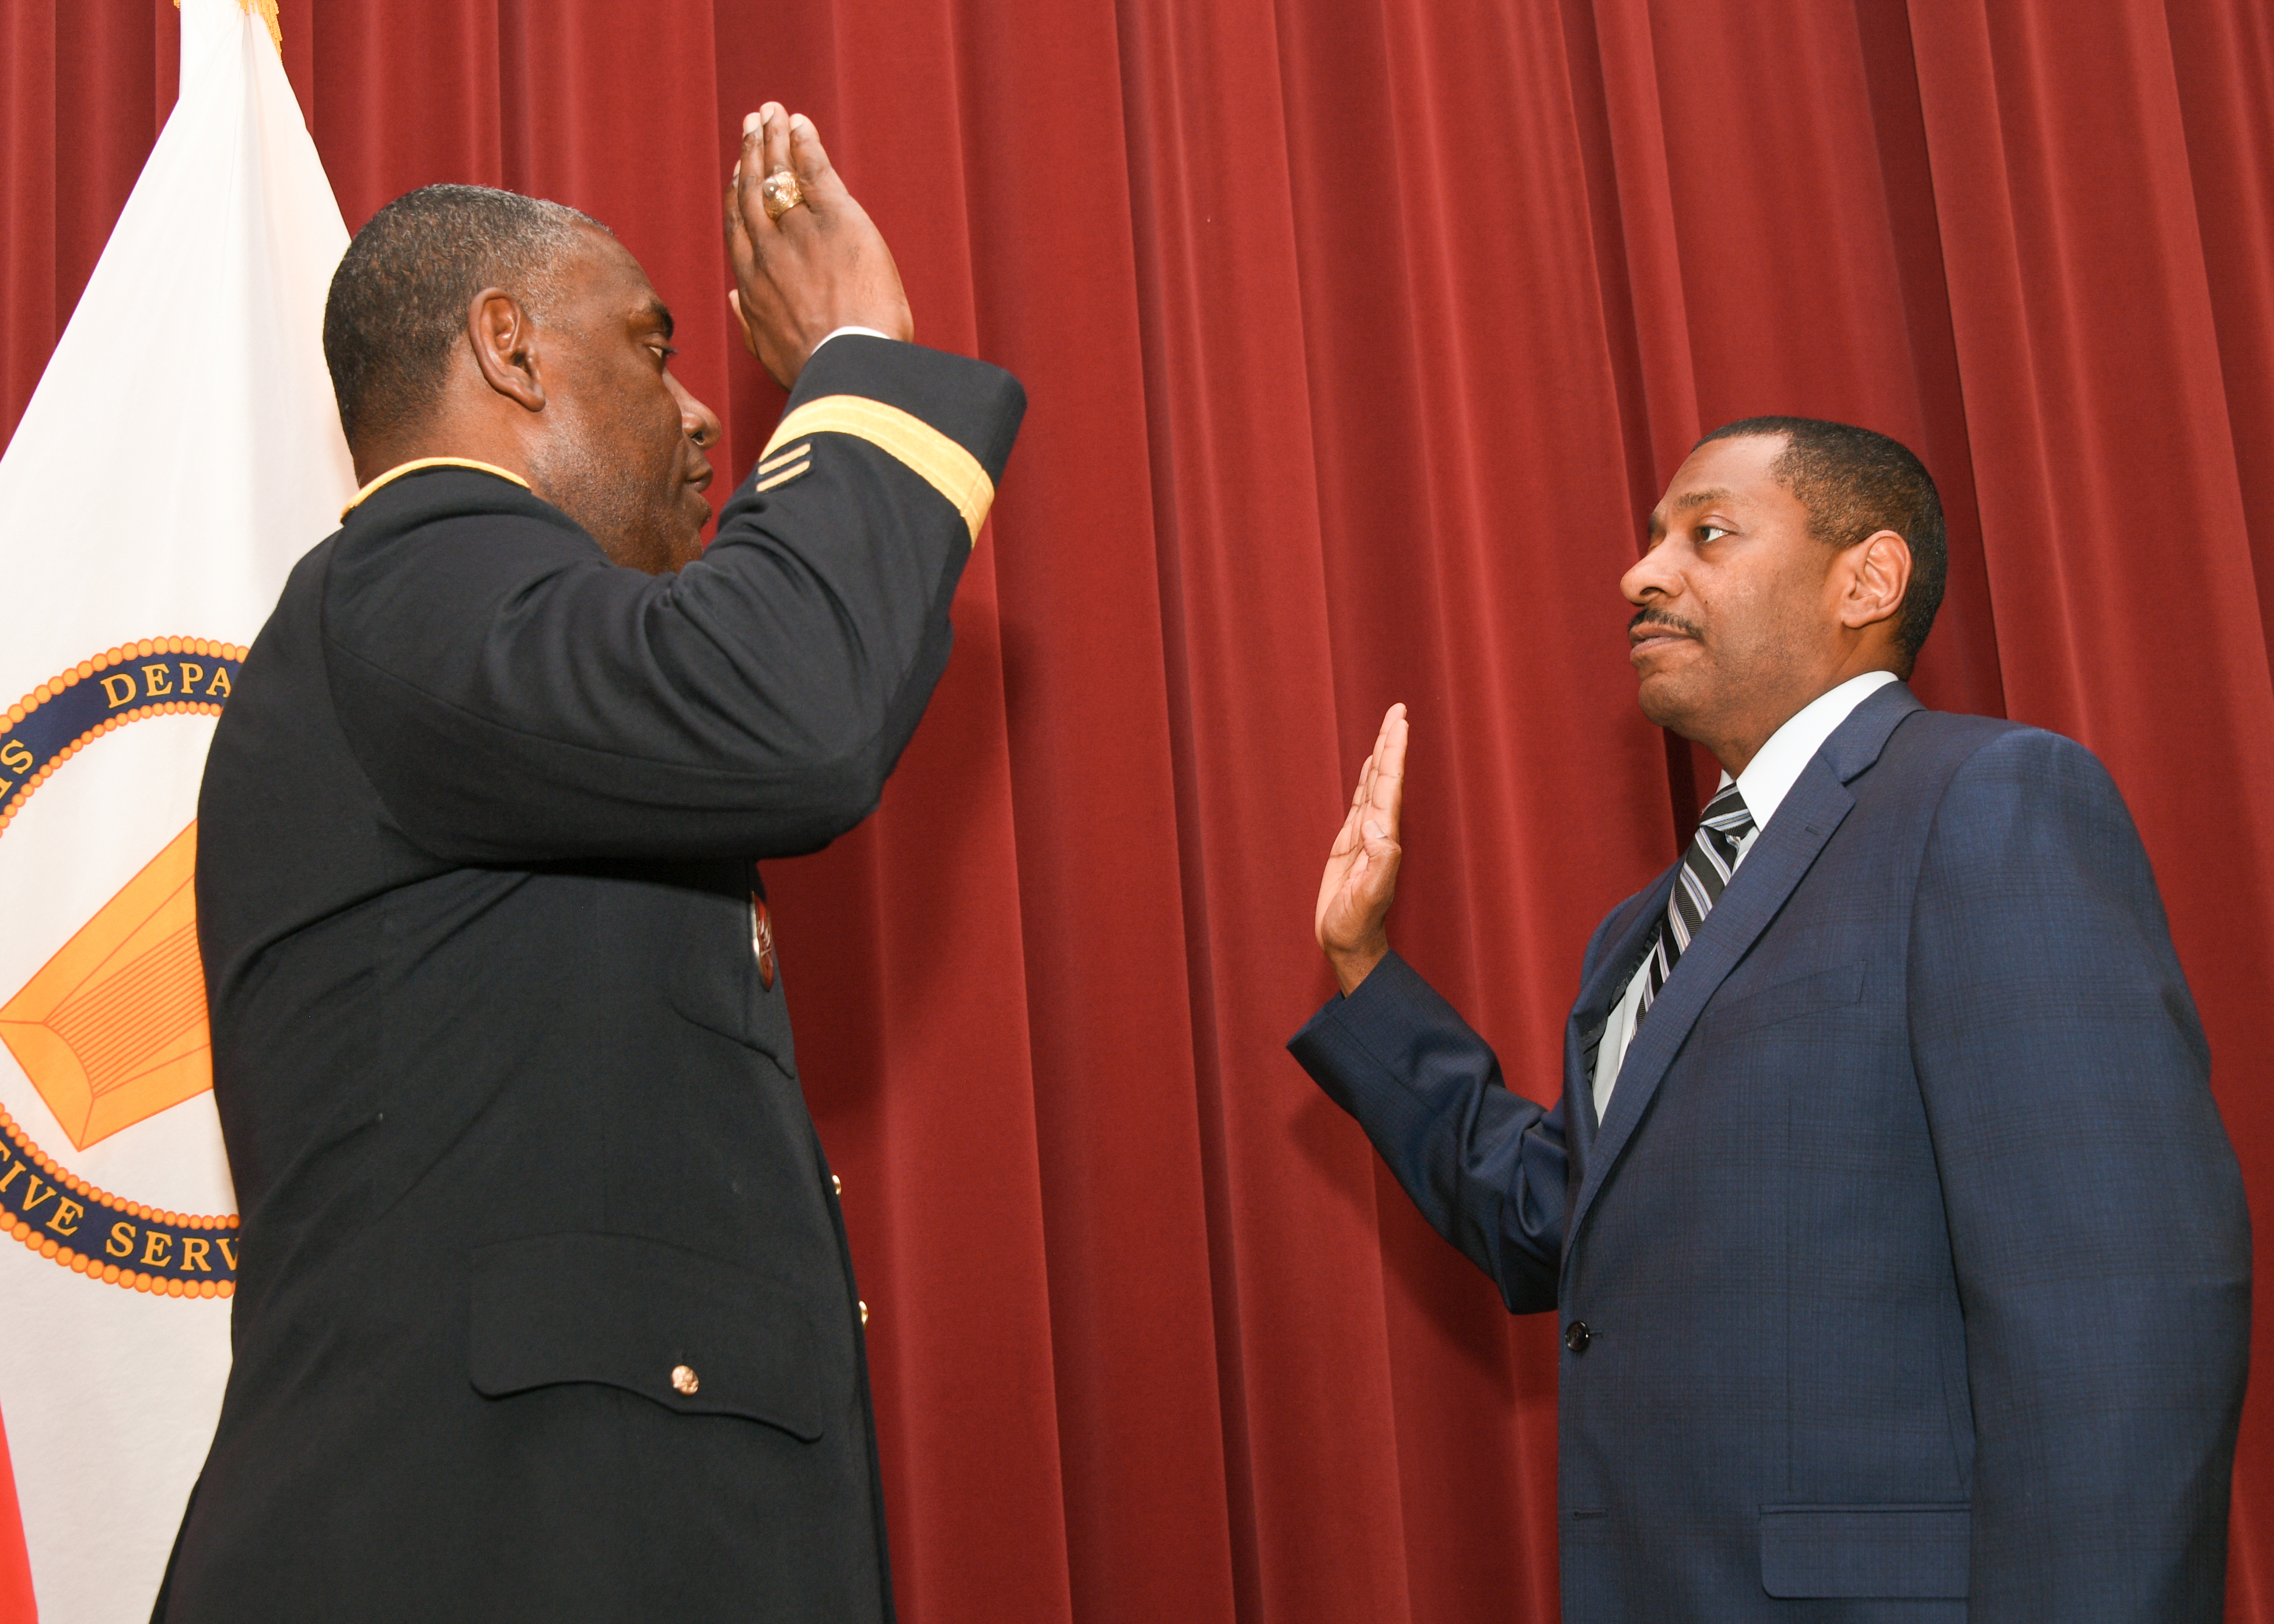 Major General Cedric Wins, commanding general of the U.S. Army Research, Development and Engineering Command, swears in Dr. Eric Moore as director of the U.S. Army Edgewood Chemical Biological Center. (Photo Credit: RDECOM PAO)